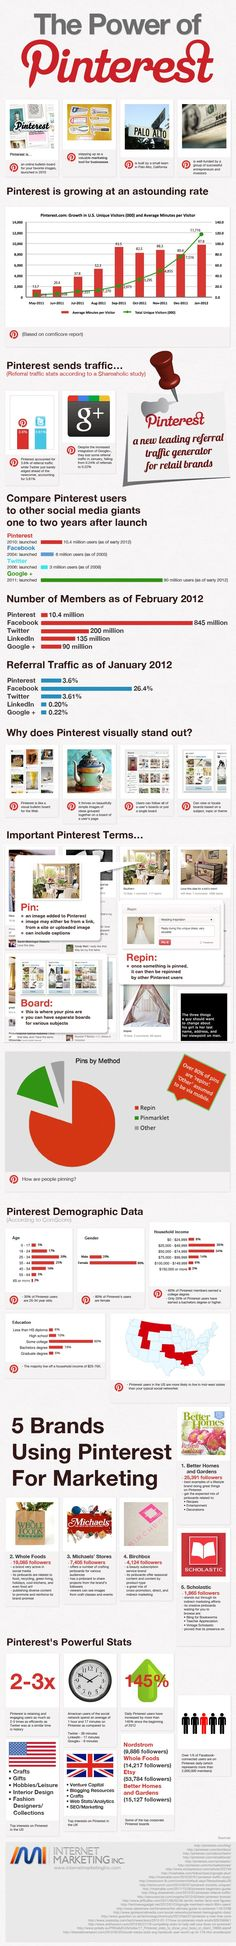 The Power of Pinterest [Infographic] #pinterest_tips